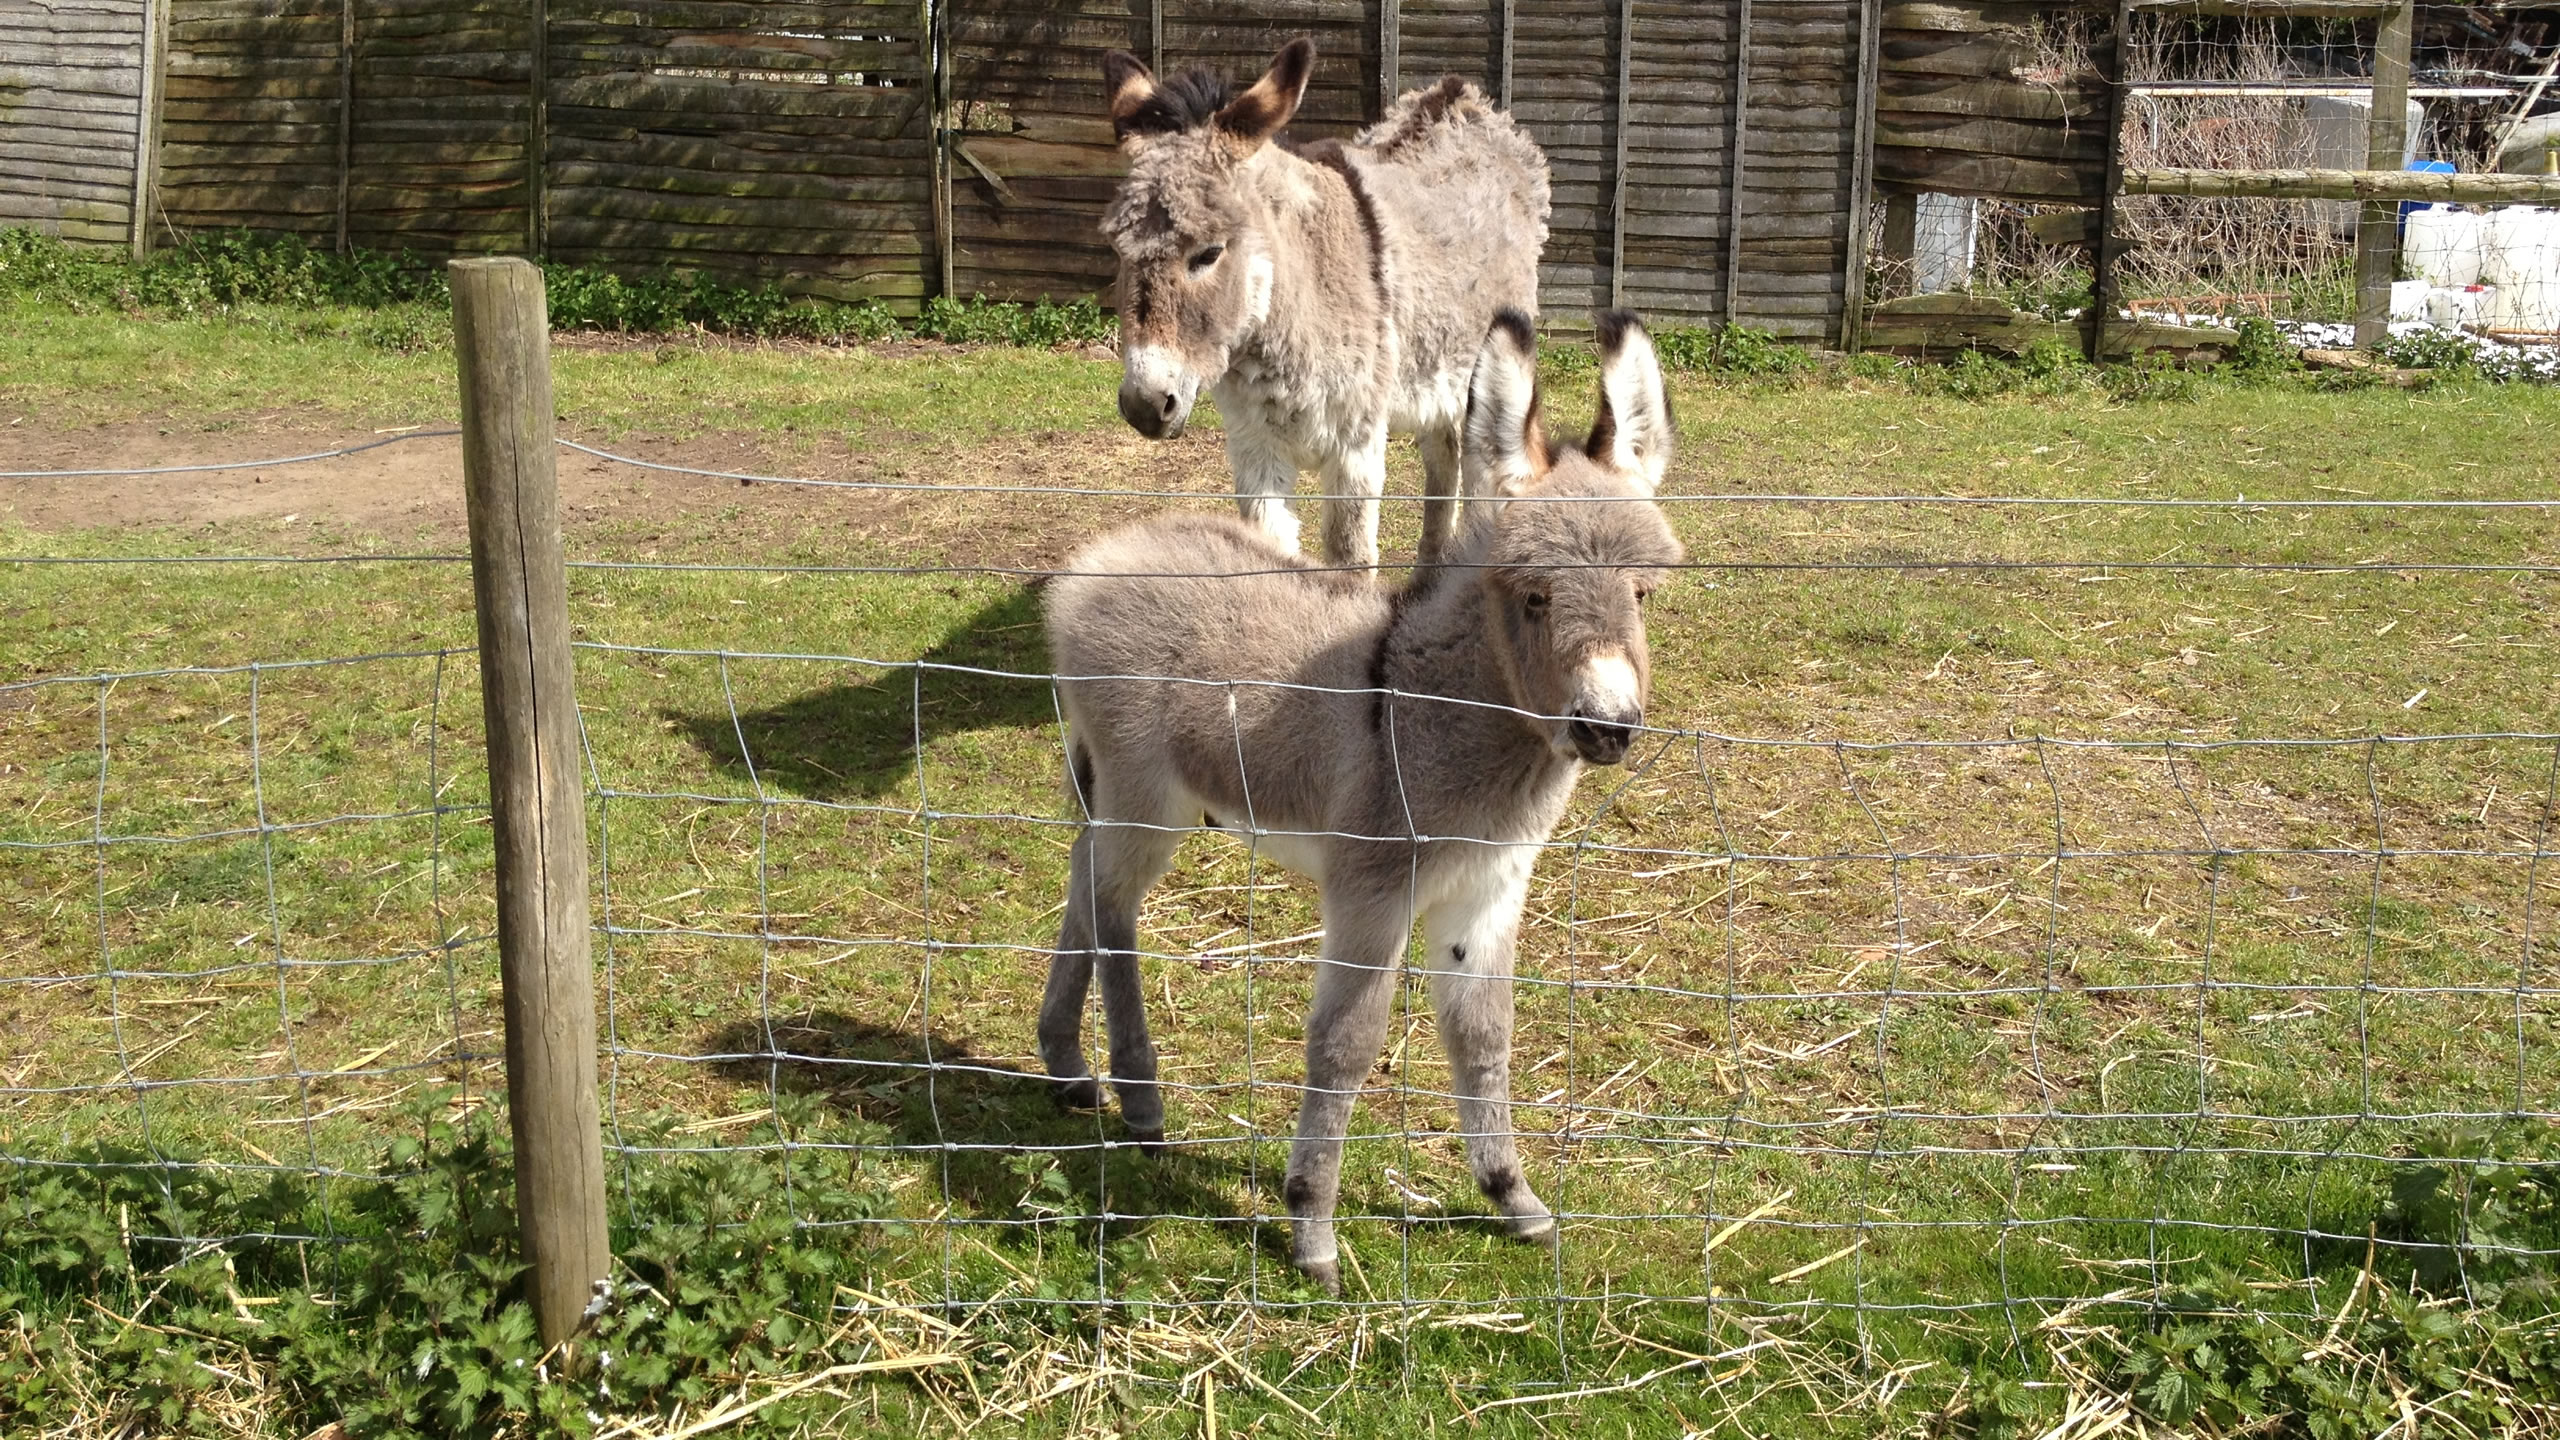 http://www.donkeyrescue.co.uk/wp-content/uploads/2017/02/HomeSlide_Viscount.jpg